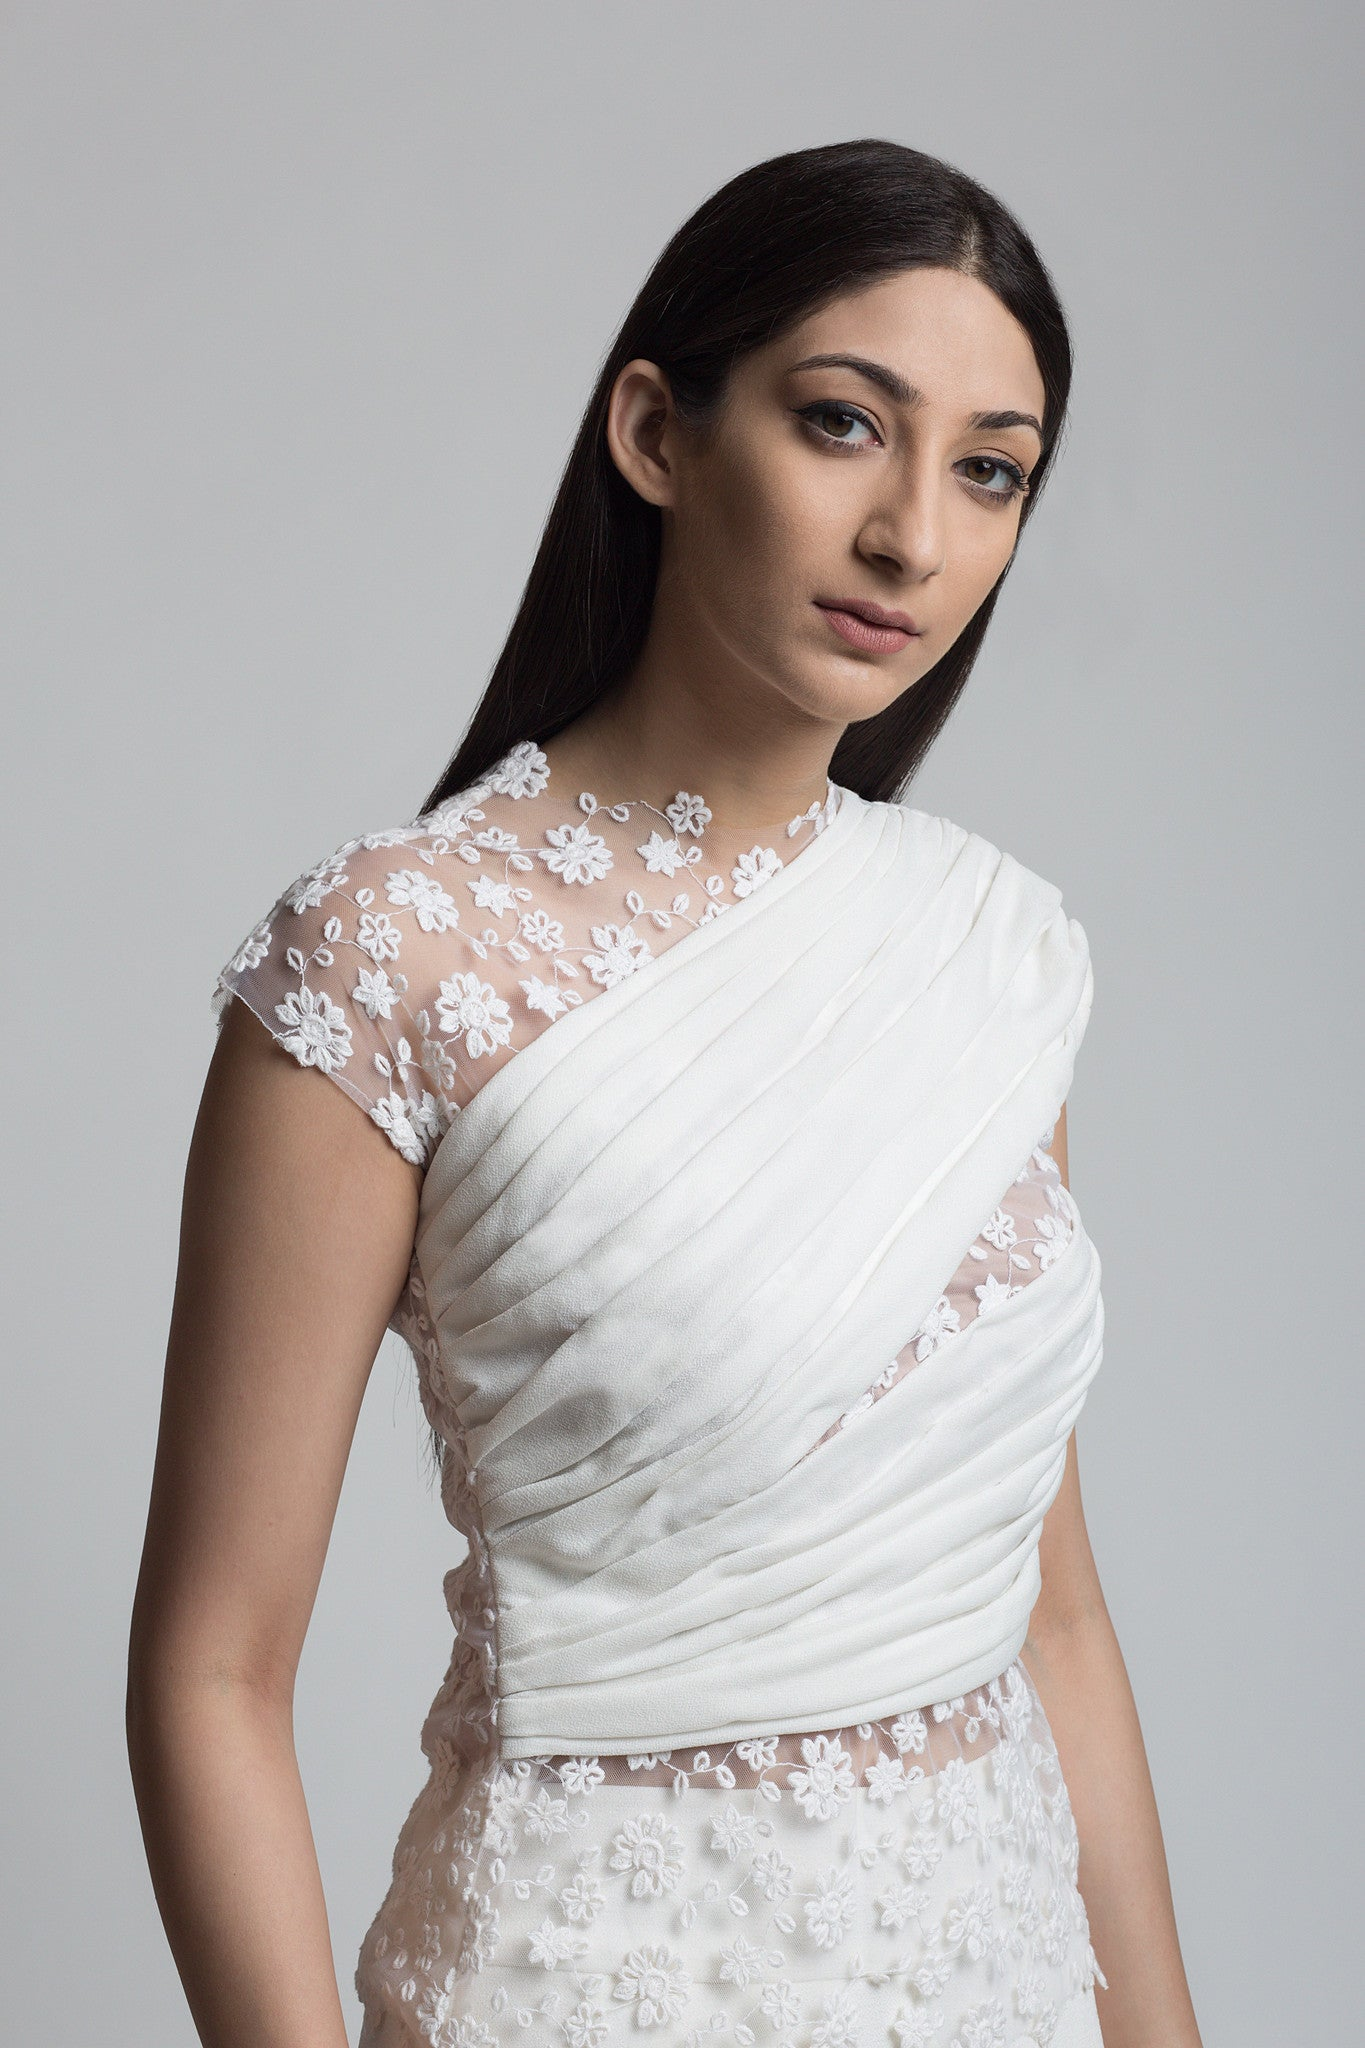 Ivory Floral Embroidered Draped Blouse - Bhaavya Bhatnagar